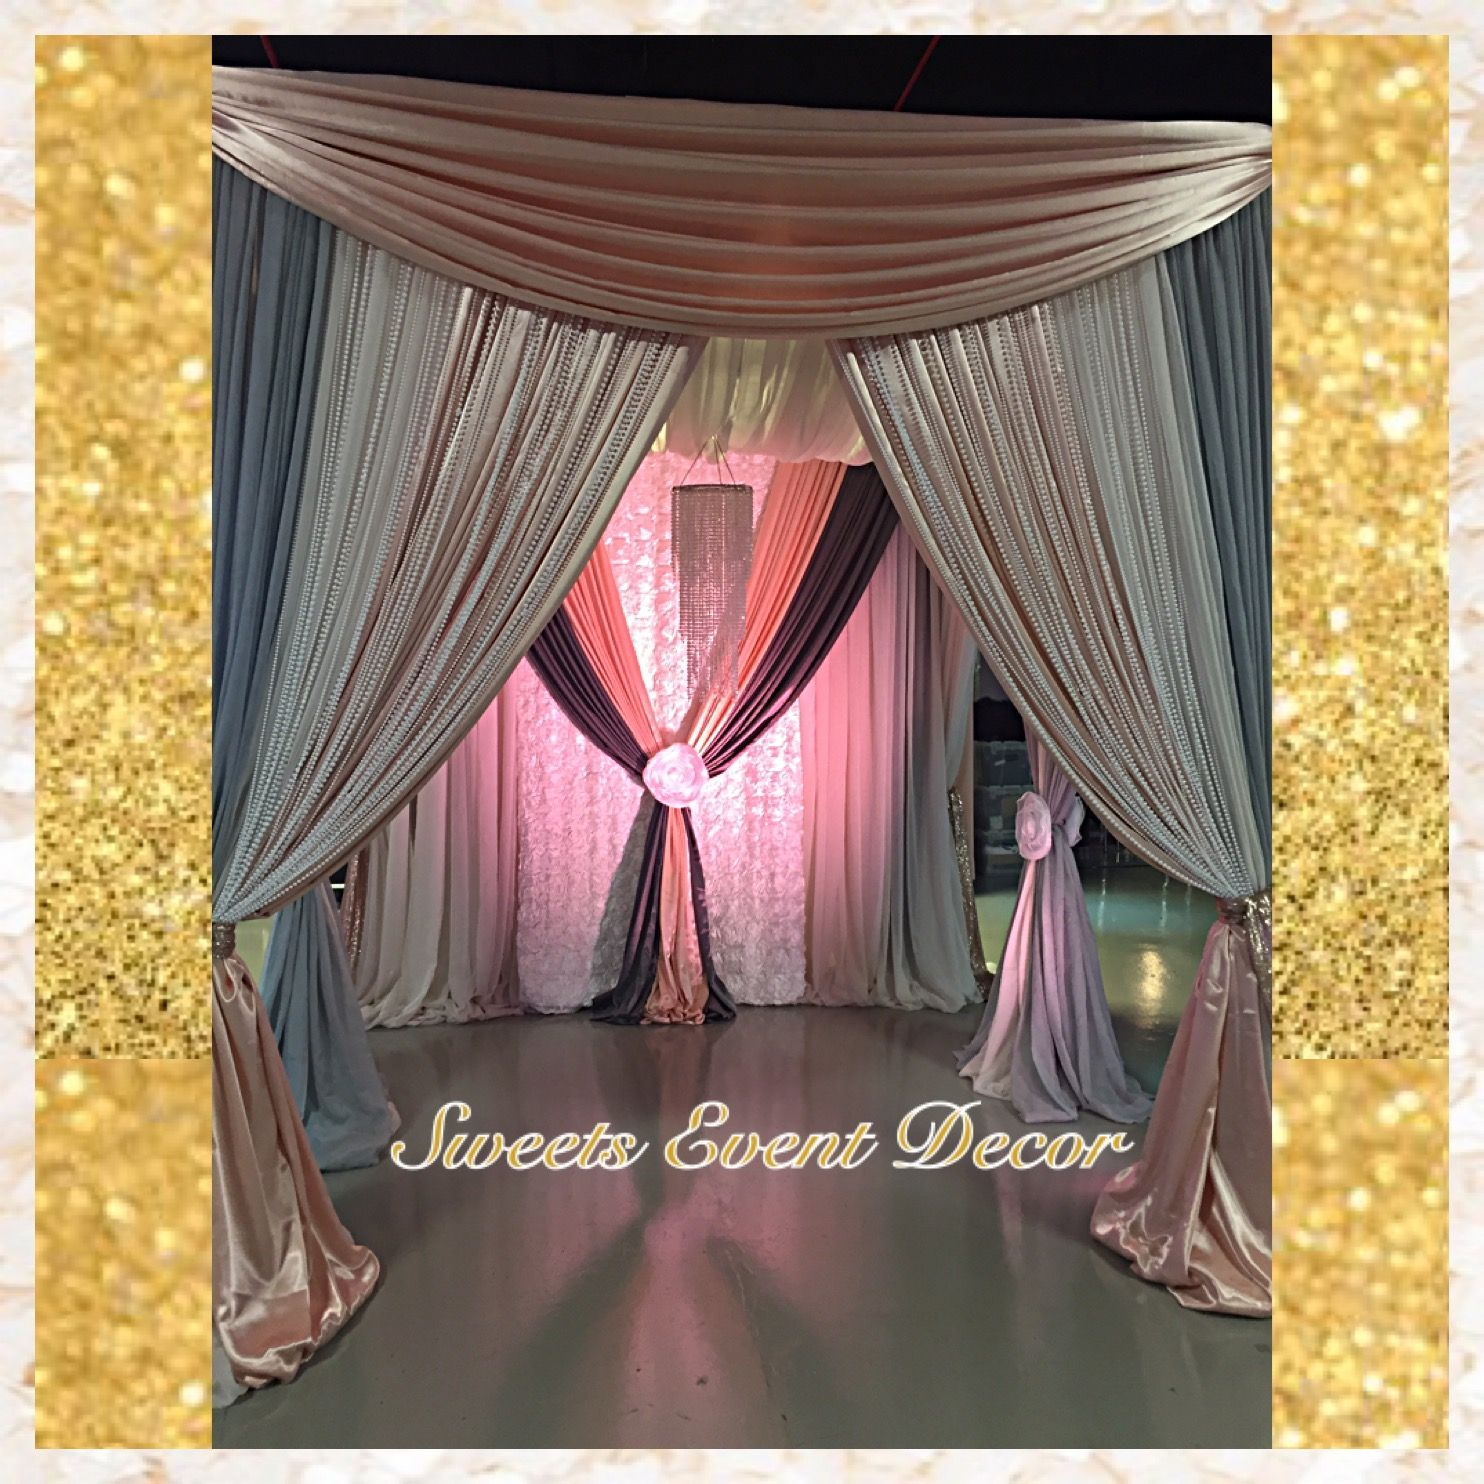 Wedding Canopy Decor by Sweets Event Decor | Tent Draping | Fabric Draping | Fabric & Wedding Canopy Decor by: Sweets Event Decor | Tent Draping ...